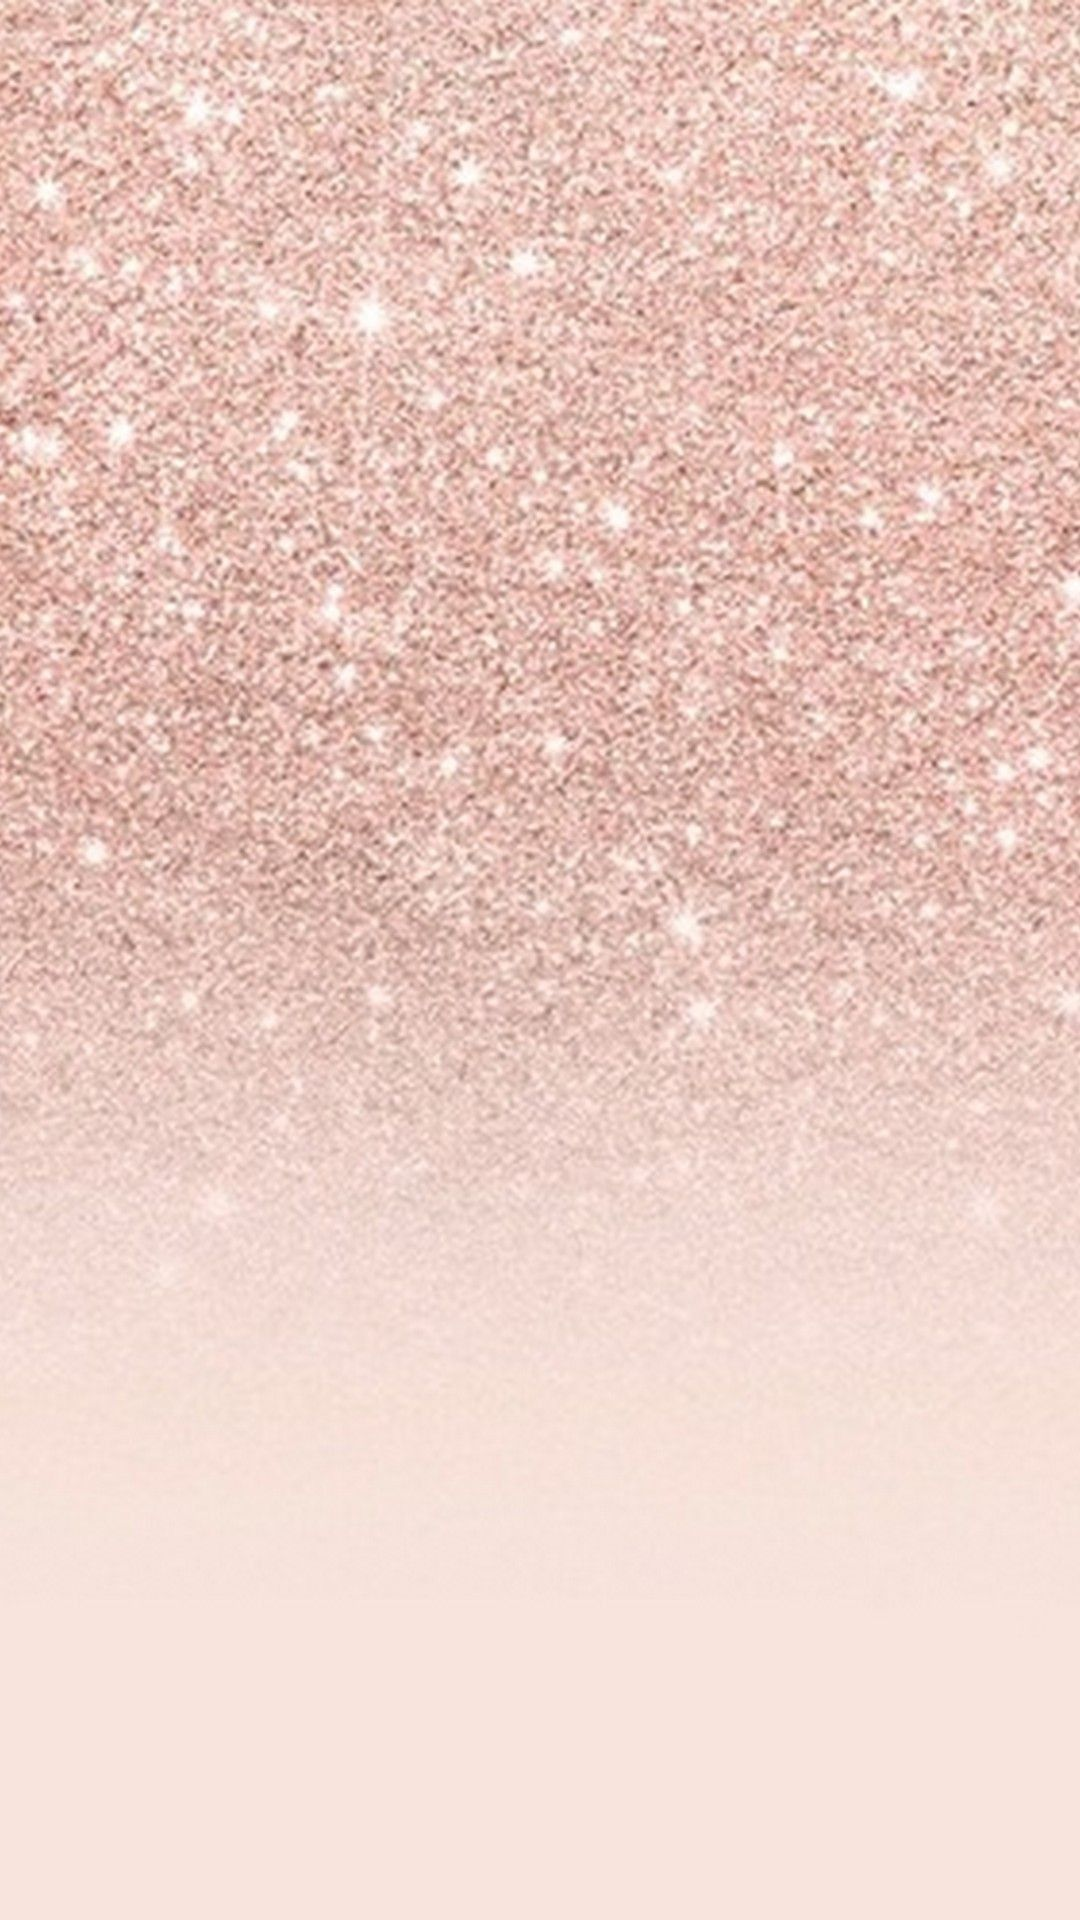 The 75 Best Rose Gold Wallpapers The 75 Best Rose Gold Wallpapers Informations About Die 75 Gold Ombre Wallpaper Gold Wallpaper Background Glitter Wallpaper High quality rose gold glitter high